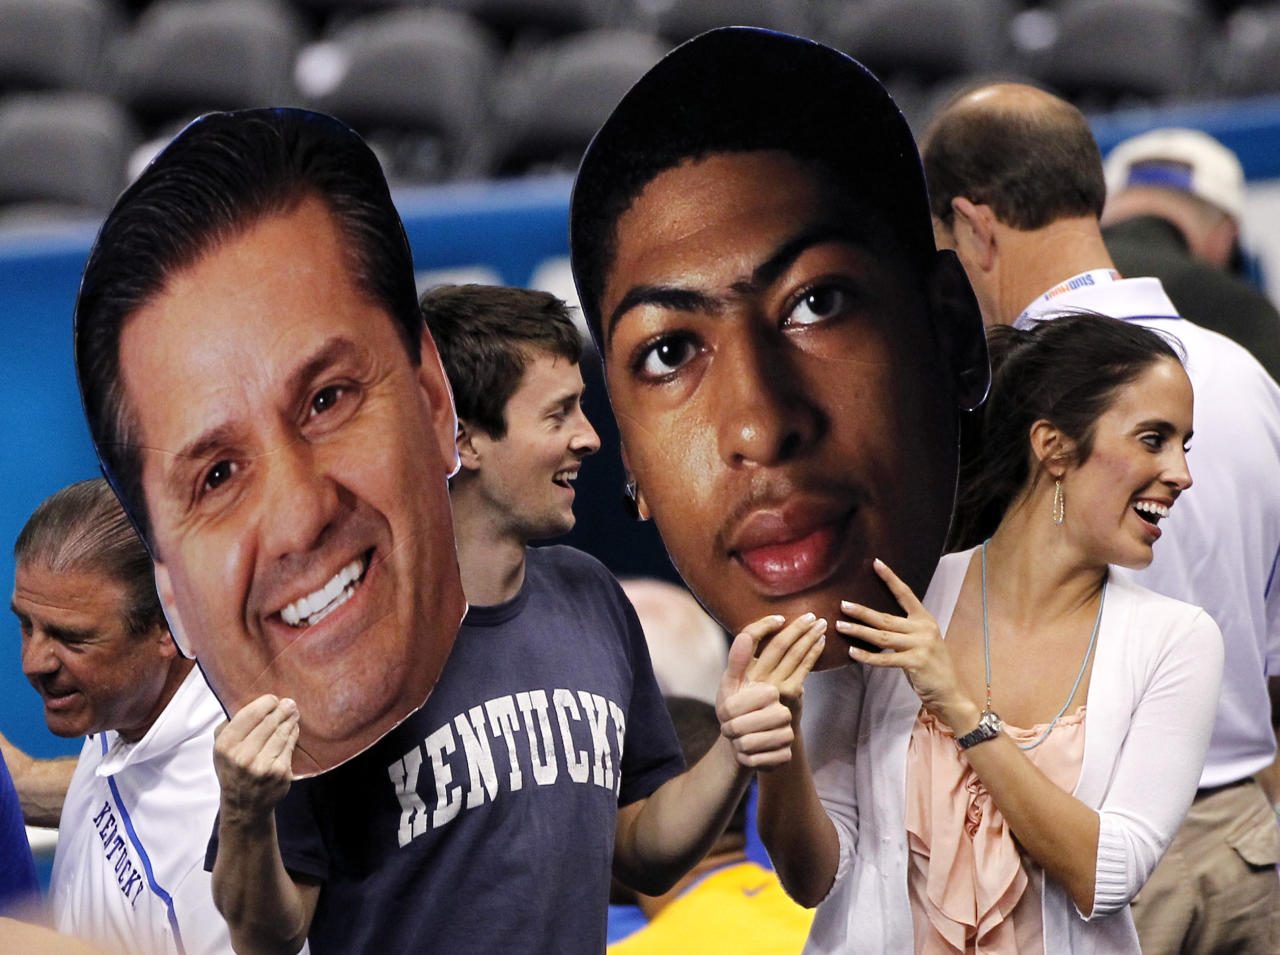 Kentucky fans hold up gaint faces of Kentucky head coach John Calipari, left and forward Anthony Davis, before the first half of the NCAA Final Four tournament college basketball championship game against Kansas, Monday, April 2, 2012, in New Orleans. (AP Photo/Bill Haber)